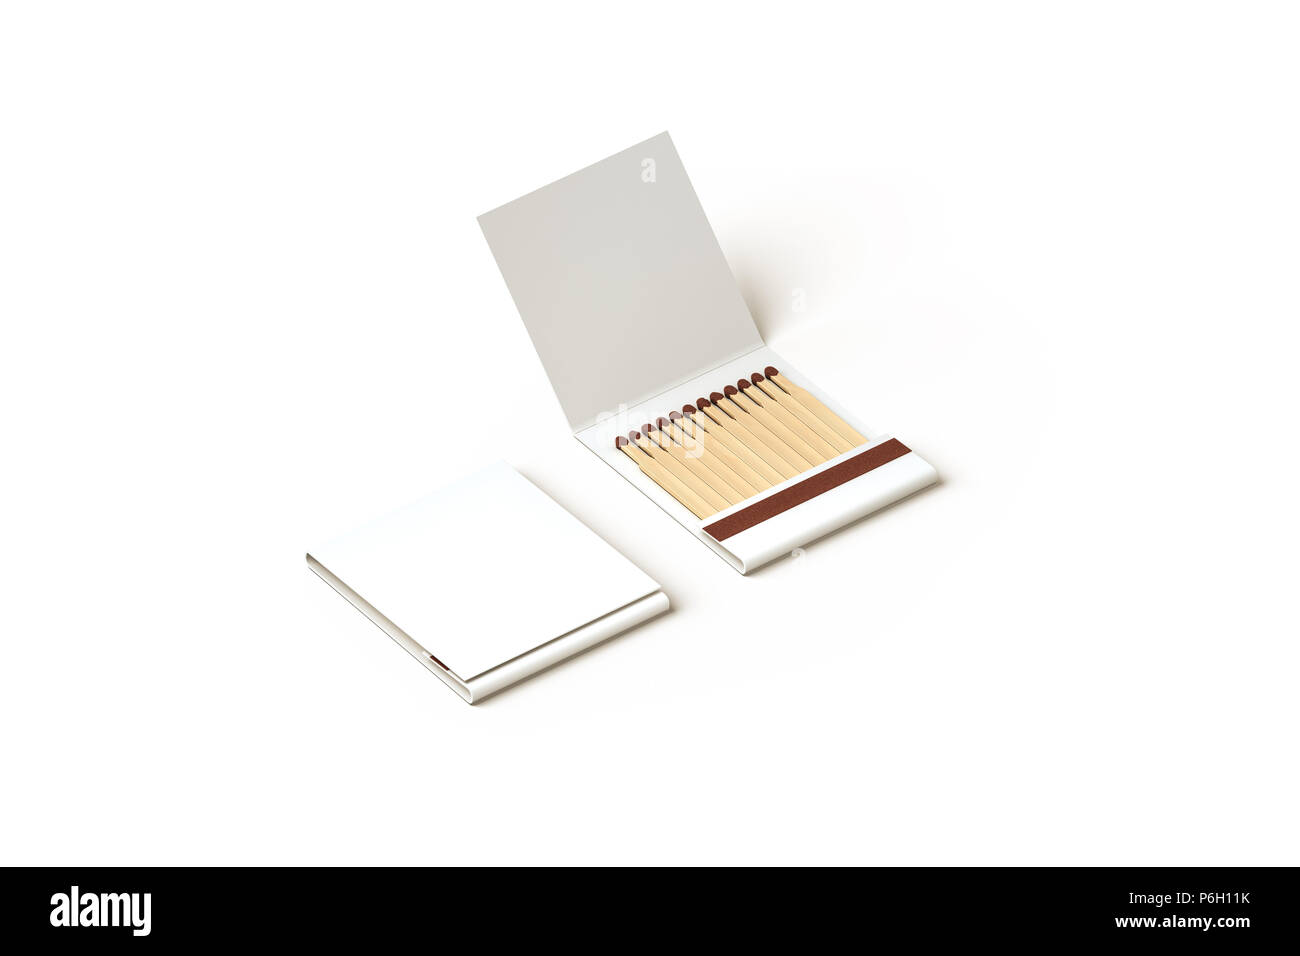 Blank promo matches book mock up, clipping path, 3d rendering. Empty paper match box packaging mockup isolated. Matchbook case top side view design presentation. Opened matchbox. - Stock Image